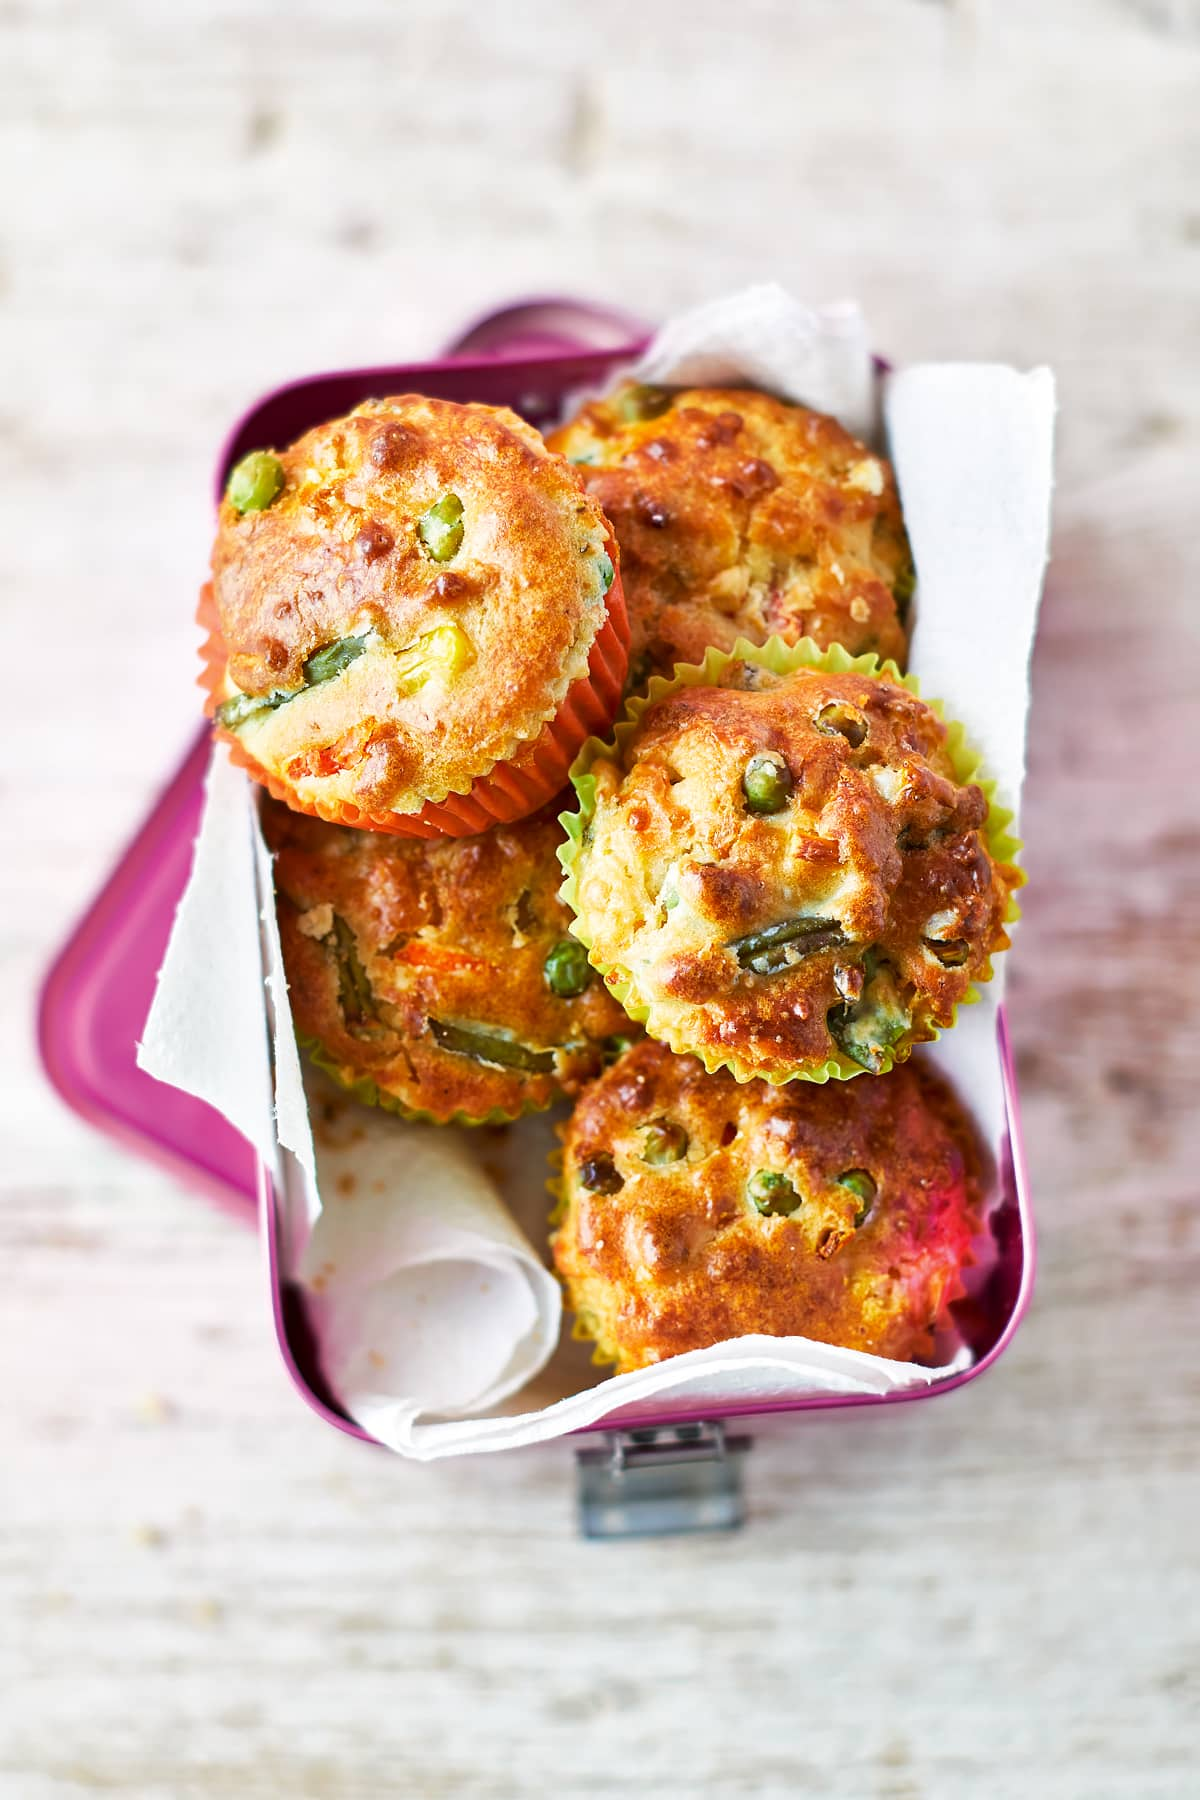 Savoury vegetable muffins in a pink lunchbox lined with paper on a wooden background. The muffins are in multicoloured cases and the tops are studded with carrots, peas, beans and sweetcorn.